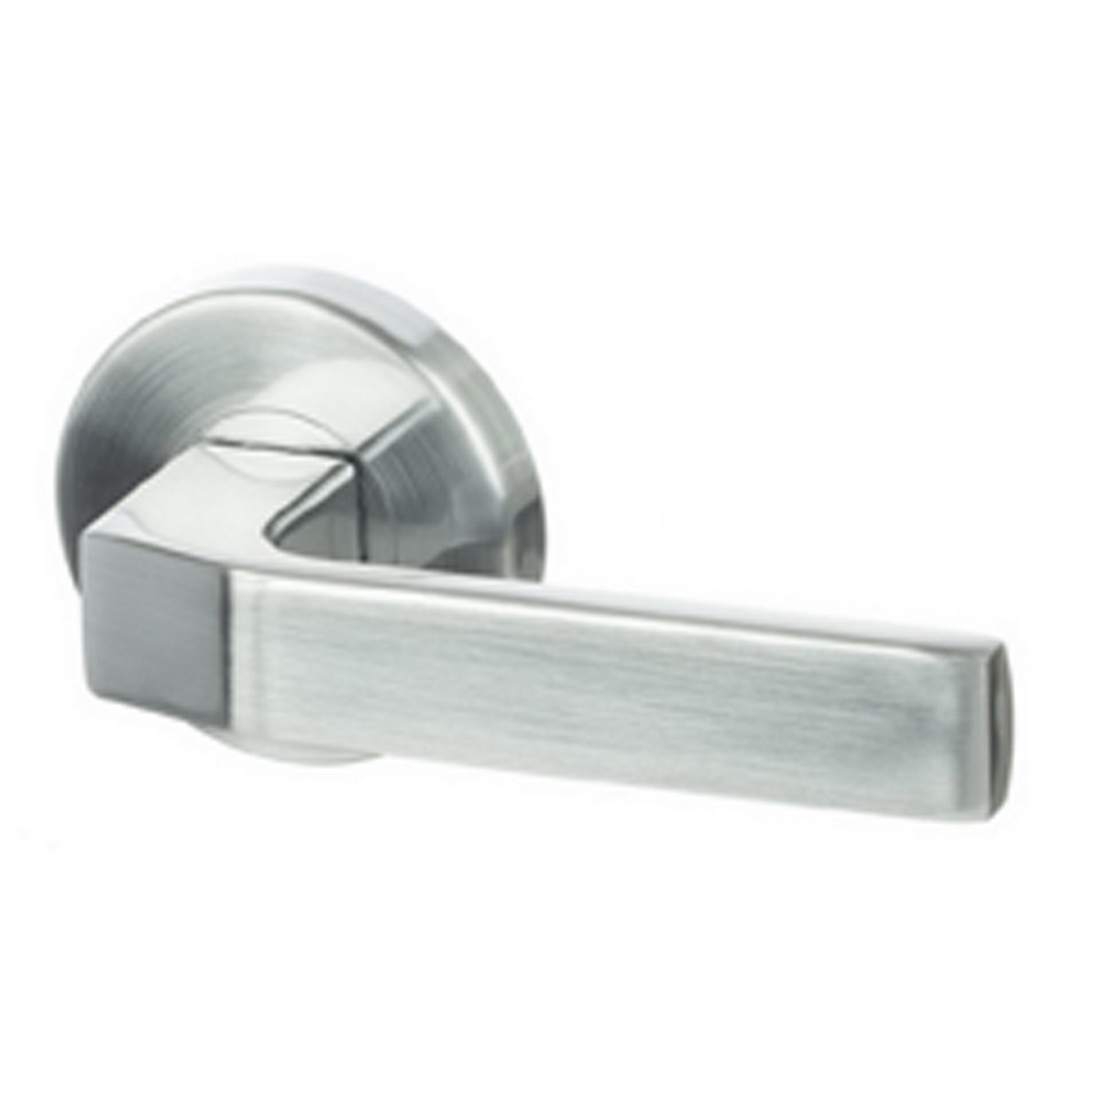 S Range Sienna Lever Handle Passage Set Brushed Satin Chrome